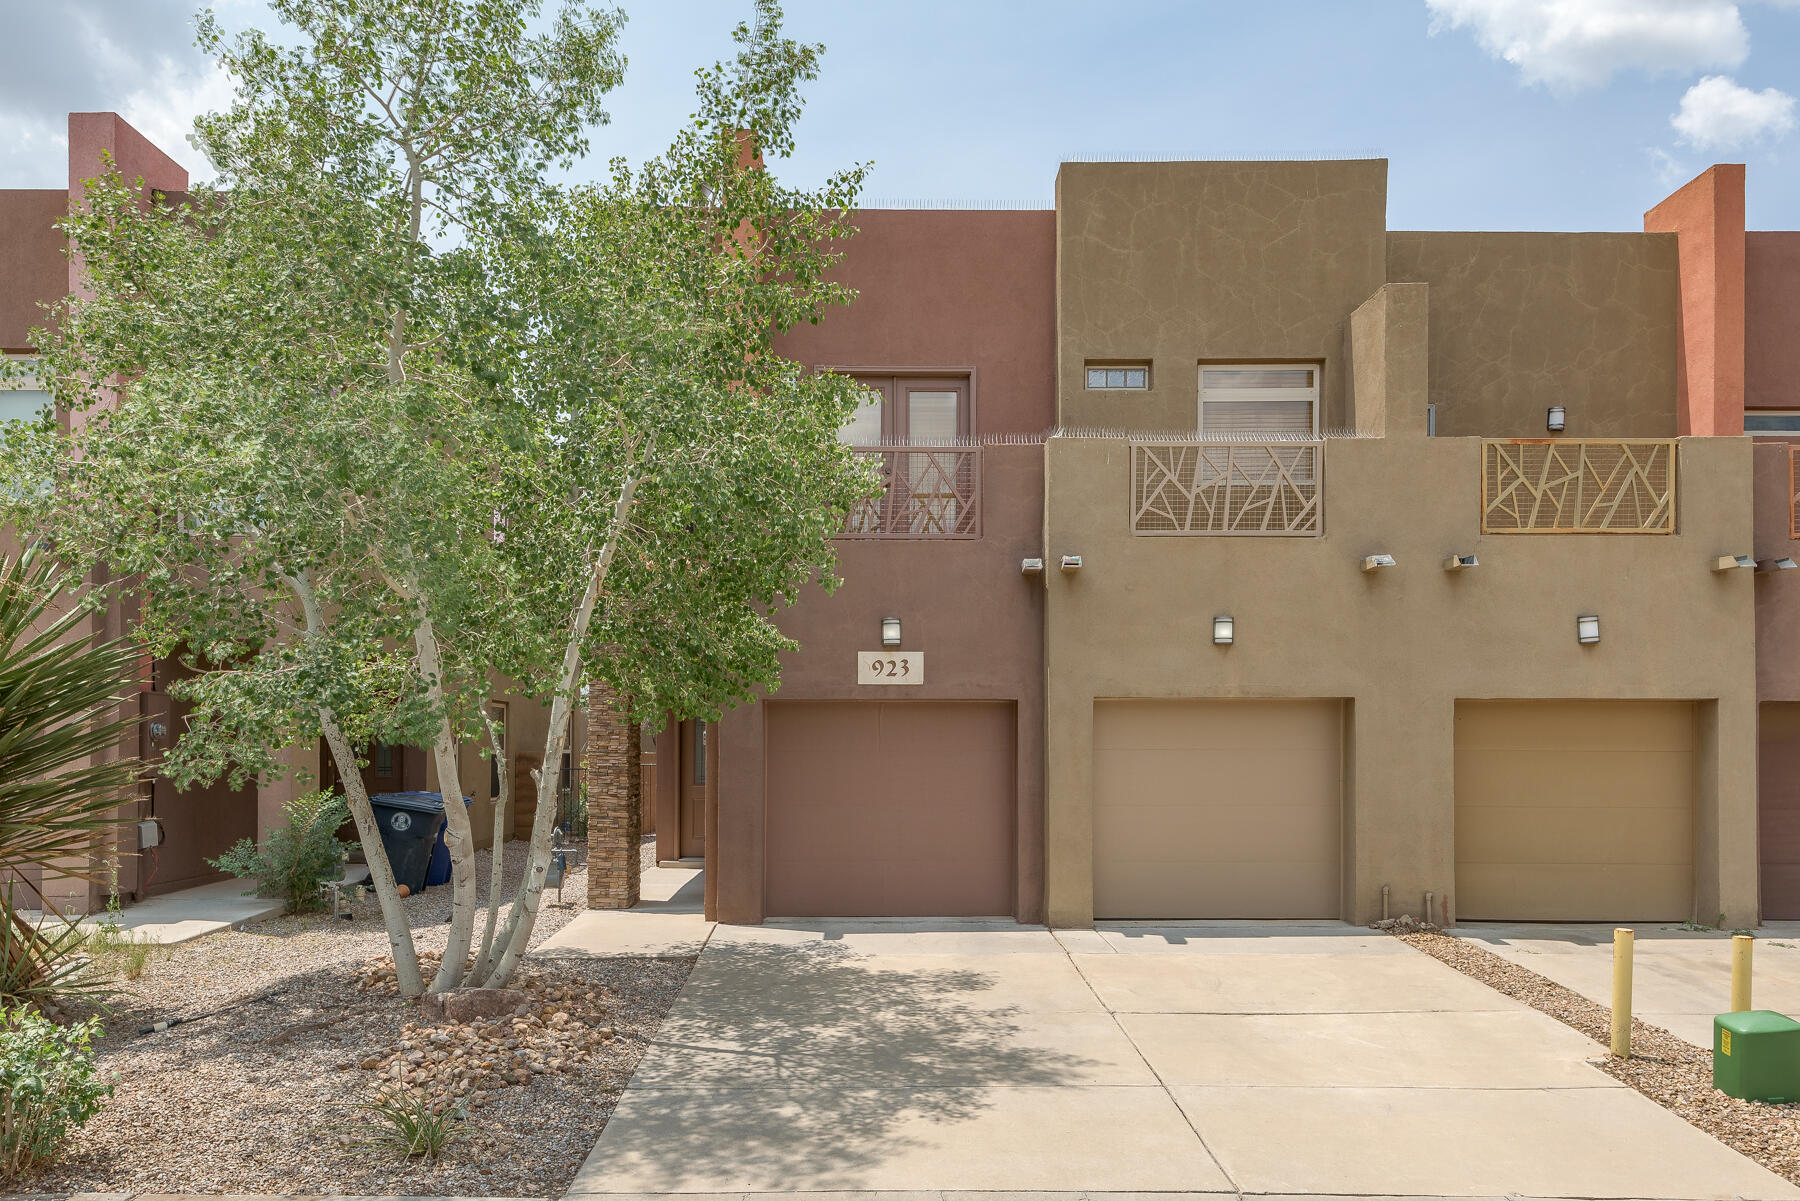 Sophisticated and artistic luxury townhome in a convenient NE location close to the freeway, military base, and shopping. Freshly painted interior, refrigerated air, two car garage, ready for move-in! Open kitchen with granite counters, tile floors, stainless appliances, and eat-in dining area with a door leading to the quaint backyard with covered patio. Cozy gas fireplace, decorative nichos, laundry room with washer and dryer, and convenient downstairs half bathroom. Spacious loft upstairs with a balcony to the west. Huge master bedroom with walk in closet, east facing balcony with mountain view, and gorgeous bathroom with jetted tub, separate shower and double sinks. Ceiling fans, upgraded two inch blinds, decorative tile, and much more!